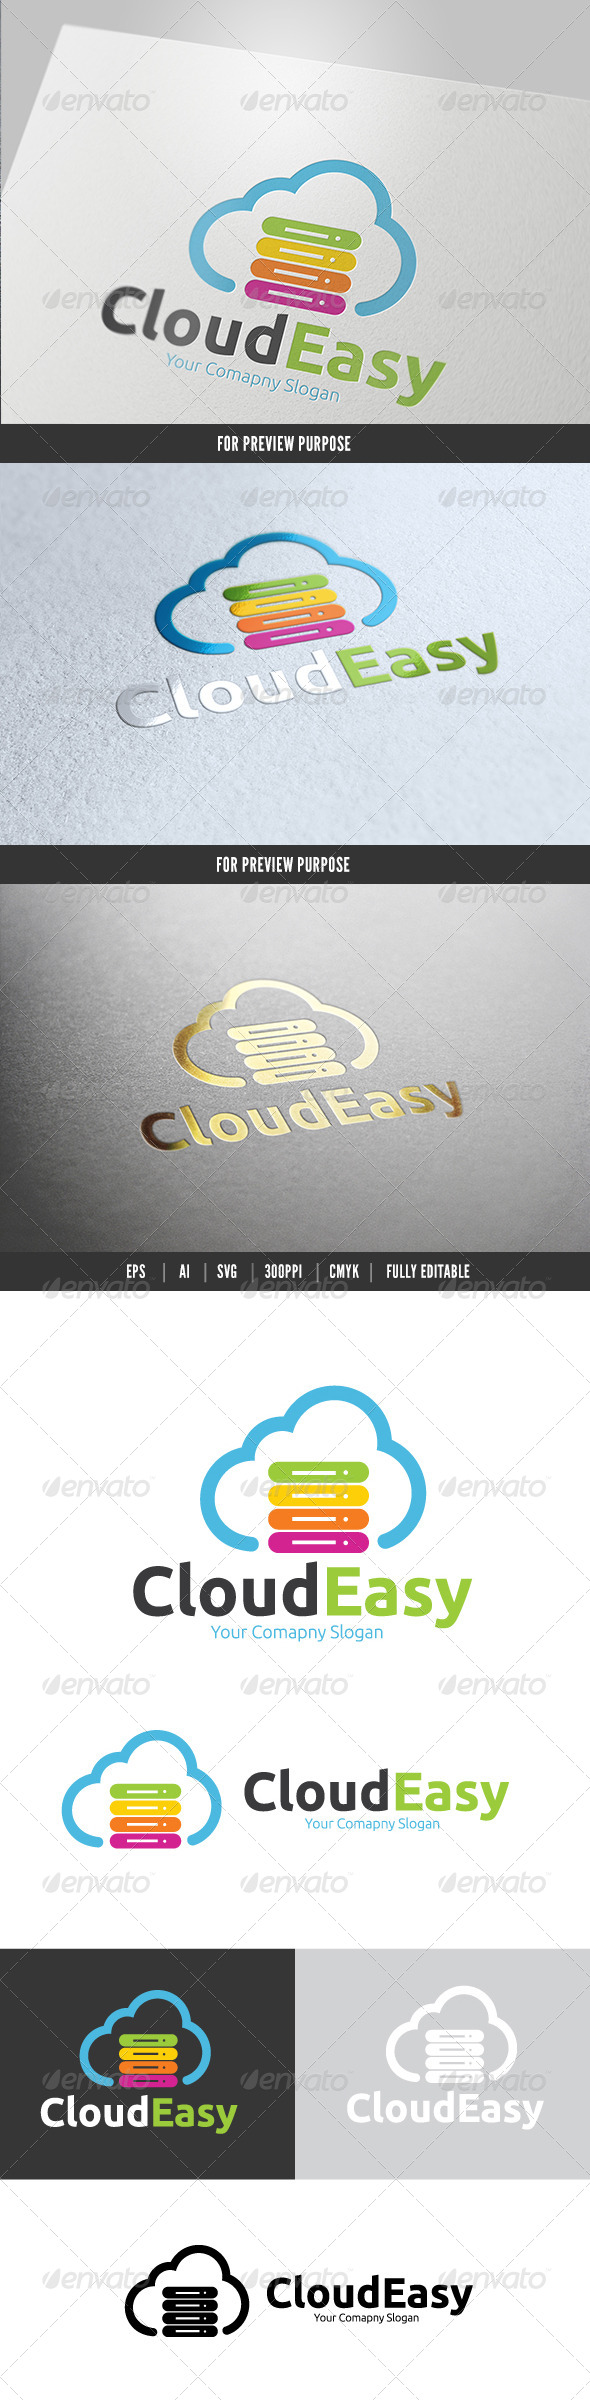 GraphicRiver Cloud Easy 6199887